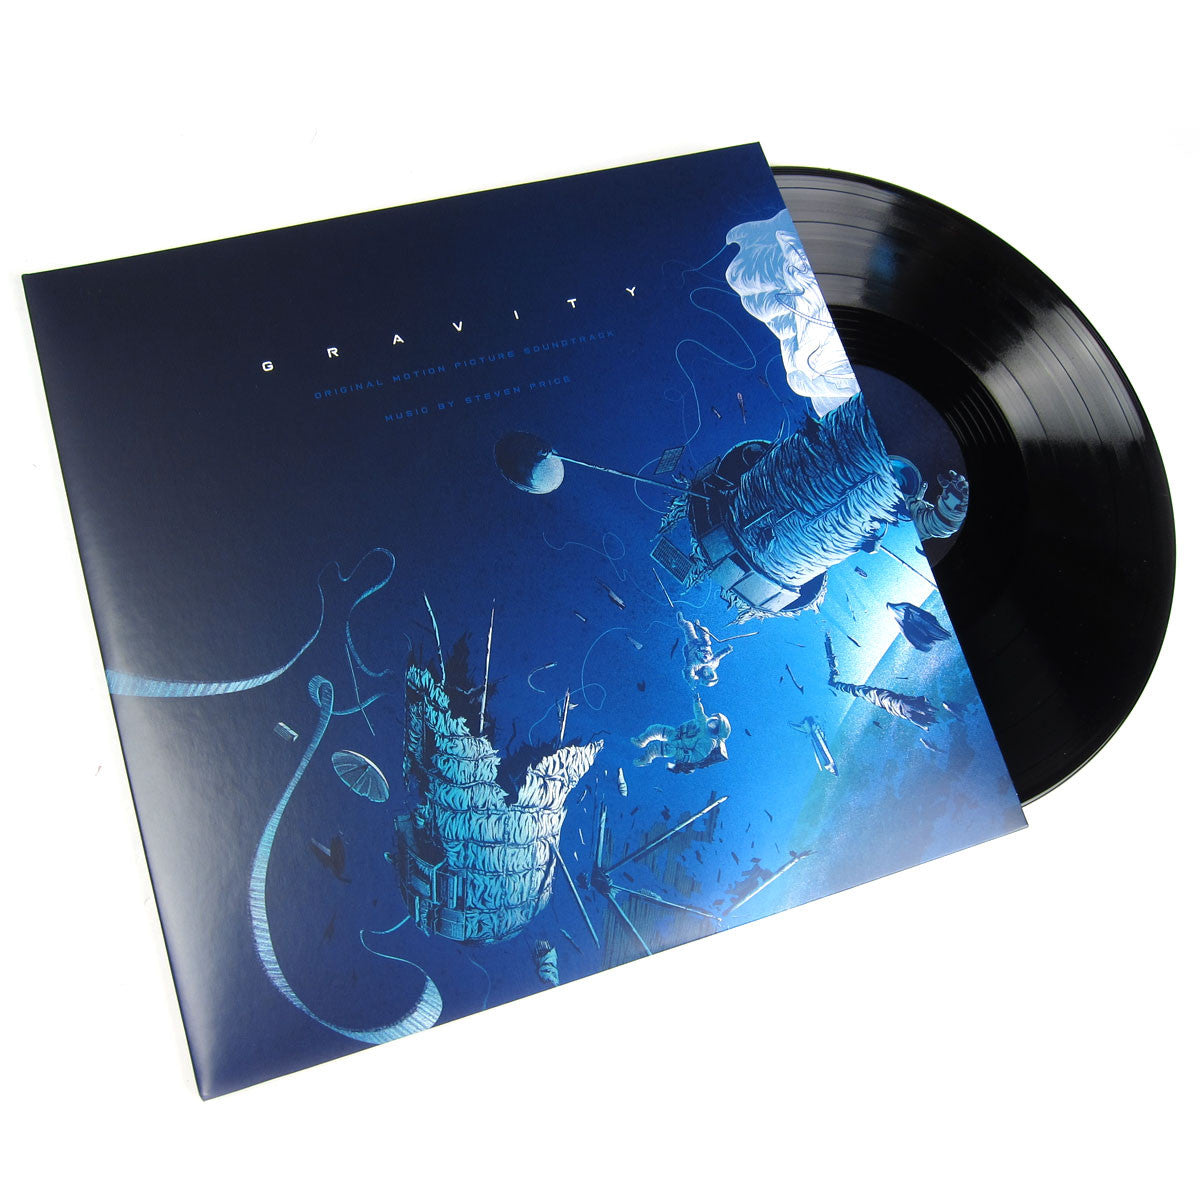 Steven Price: Gravity Original Motion Picture Soundtrack (180g) Vinyl 2LP